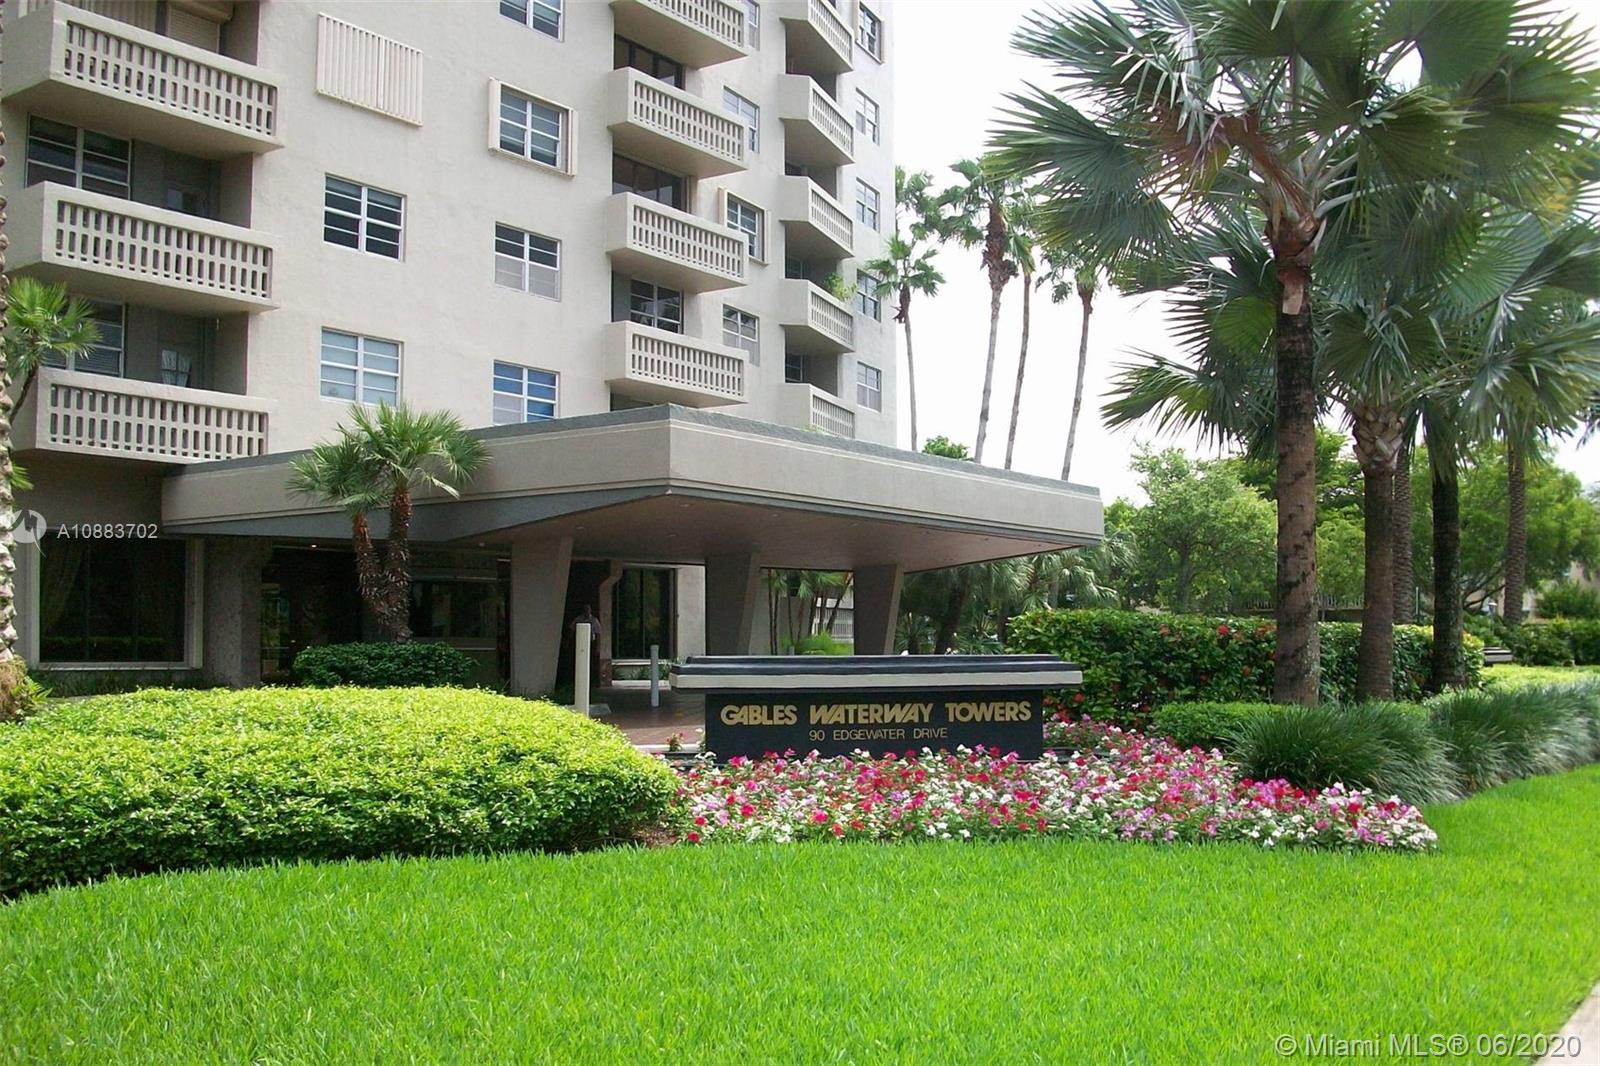 Gables Waterway Towers is a luxury doorman building situated just south of Coconut Grove on the Bay. The building was just completely renovated, and has a heated pool, Boat slips, Gym, Media Room & Game Room. The complex is professionally managed with the manager's office on site, and open Monday-Friday from 9:00- 5:00 Pm. The building has a 24 hr. concierge with 2 valet and security guards 24/7. Also on staff are 2 maintenance men and a 4 man janitorial staff. Features a central laundry room on each floor and is currently deciding if individual units can soon have a washer- Dryer. It's Like living in at a resort, all year long!